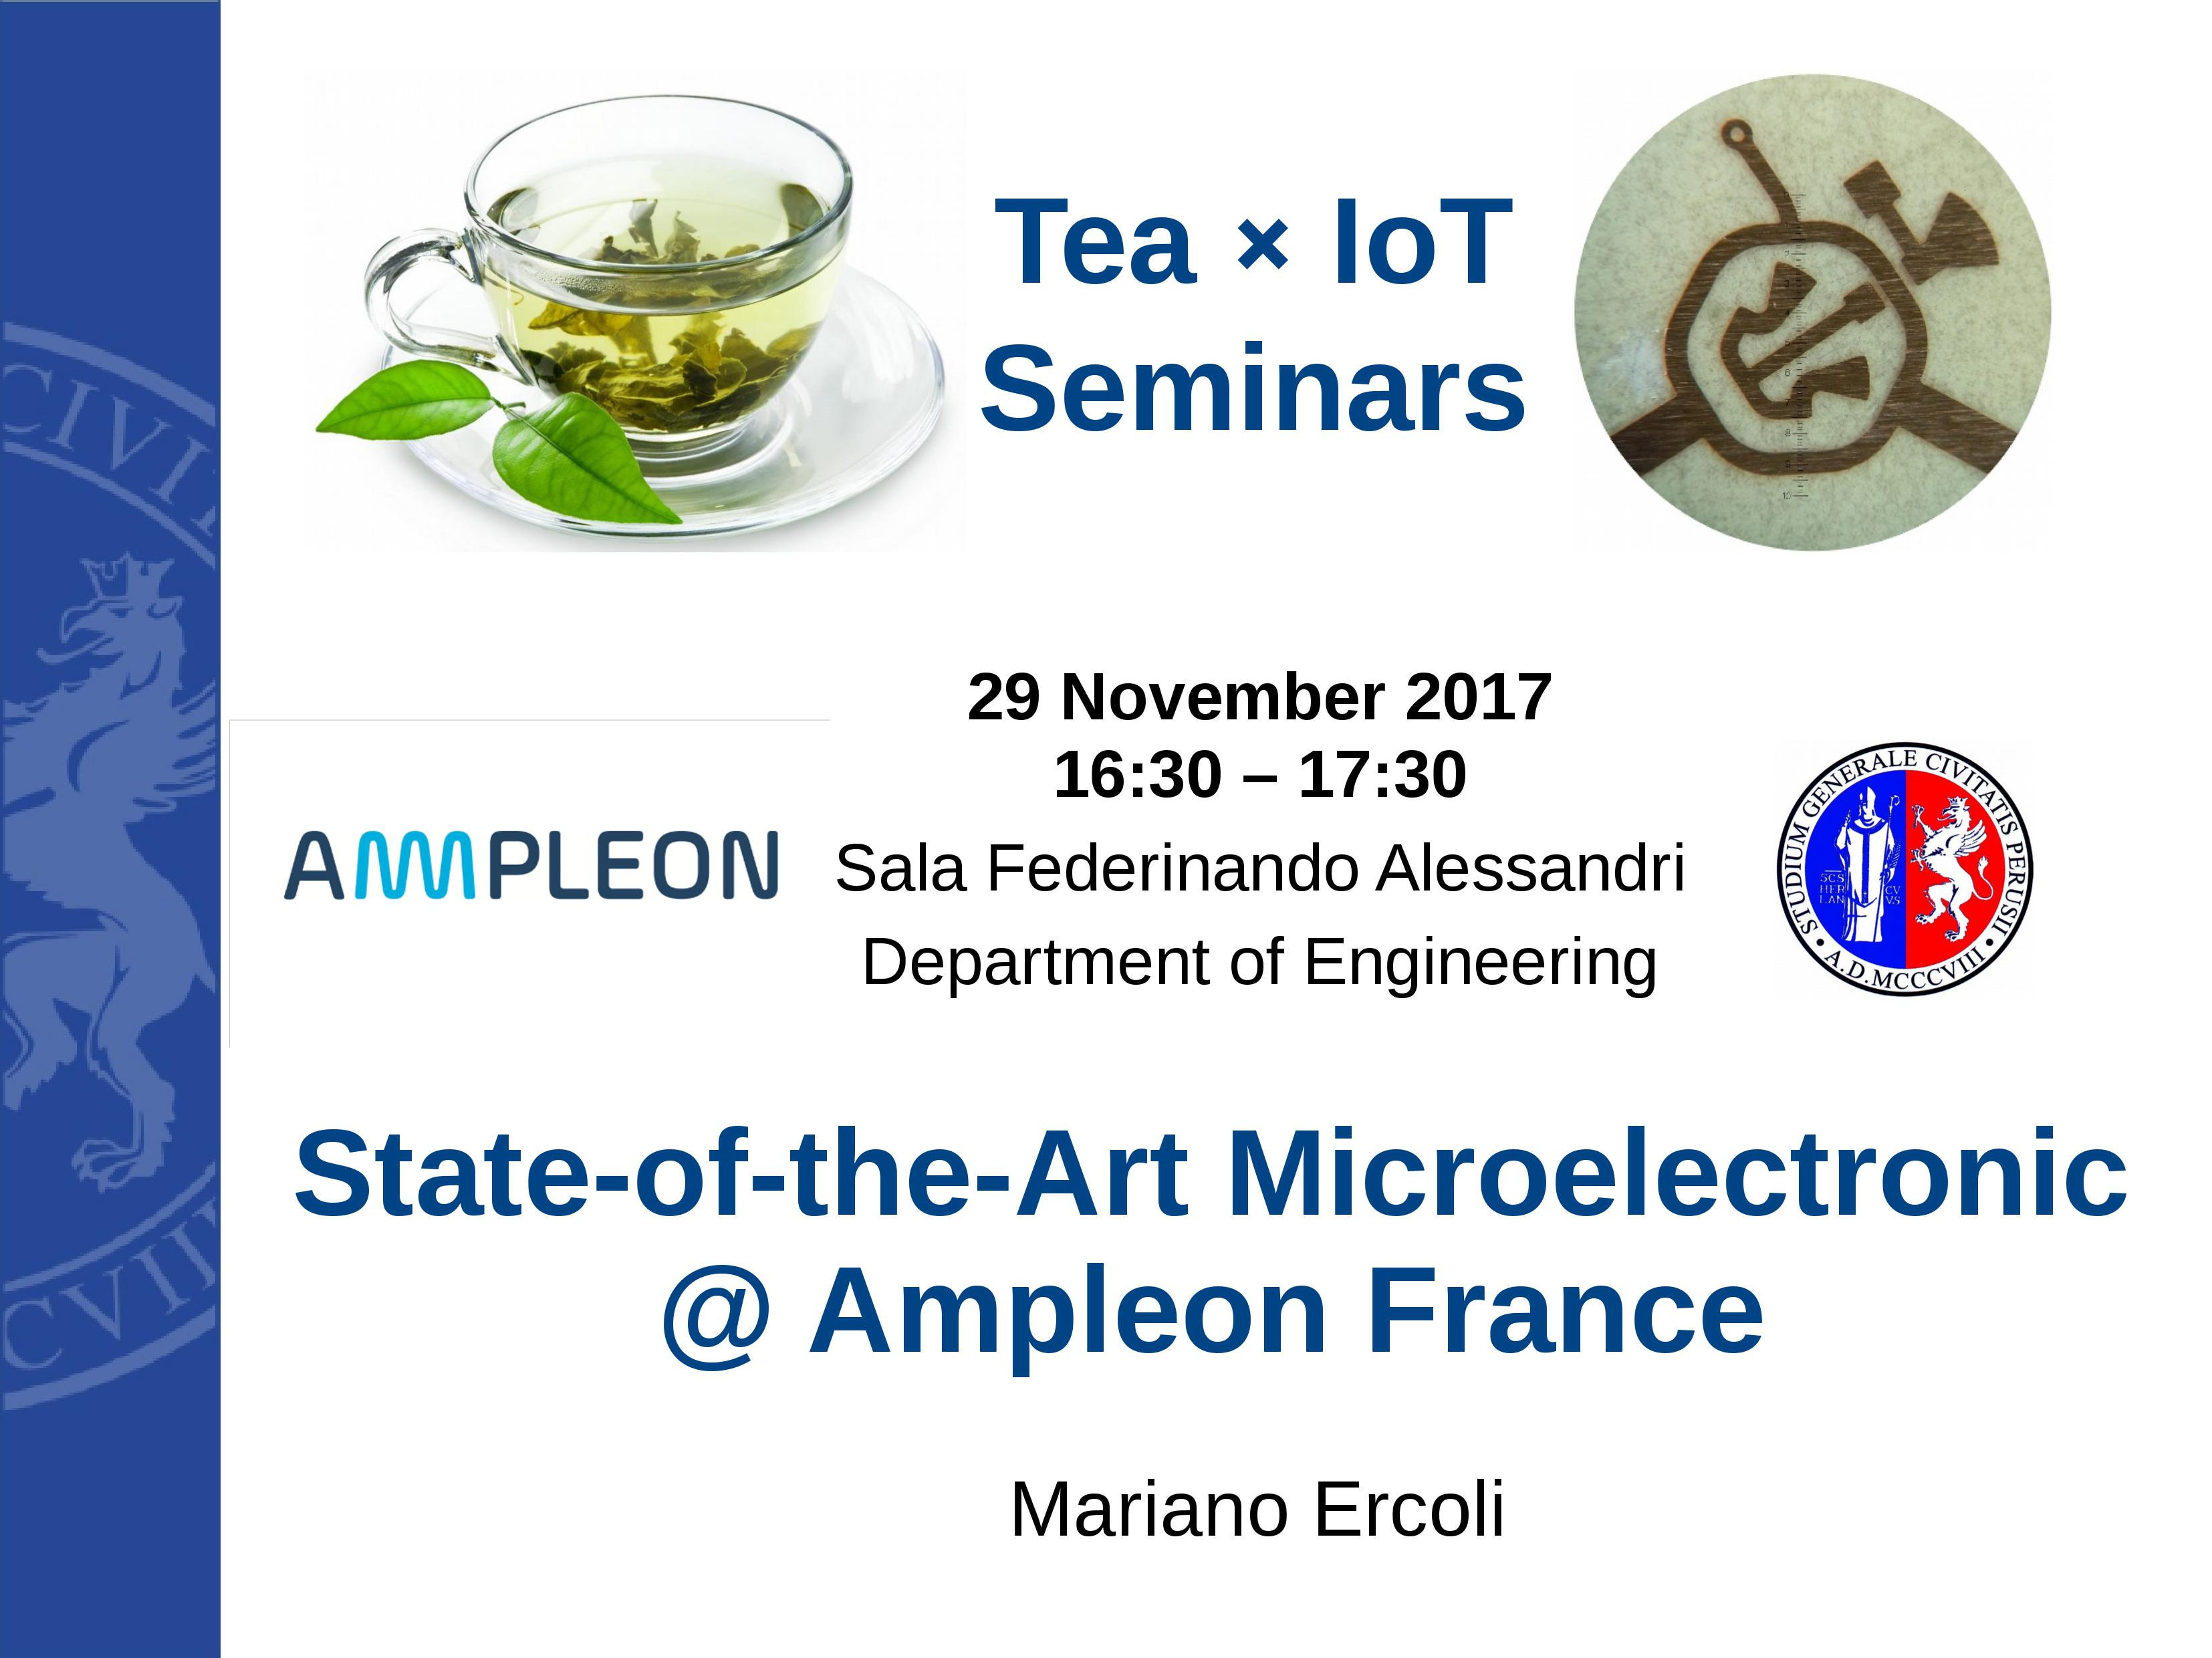 State-of-the-Art Microelectronic @ Ampleon France